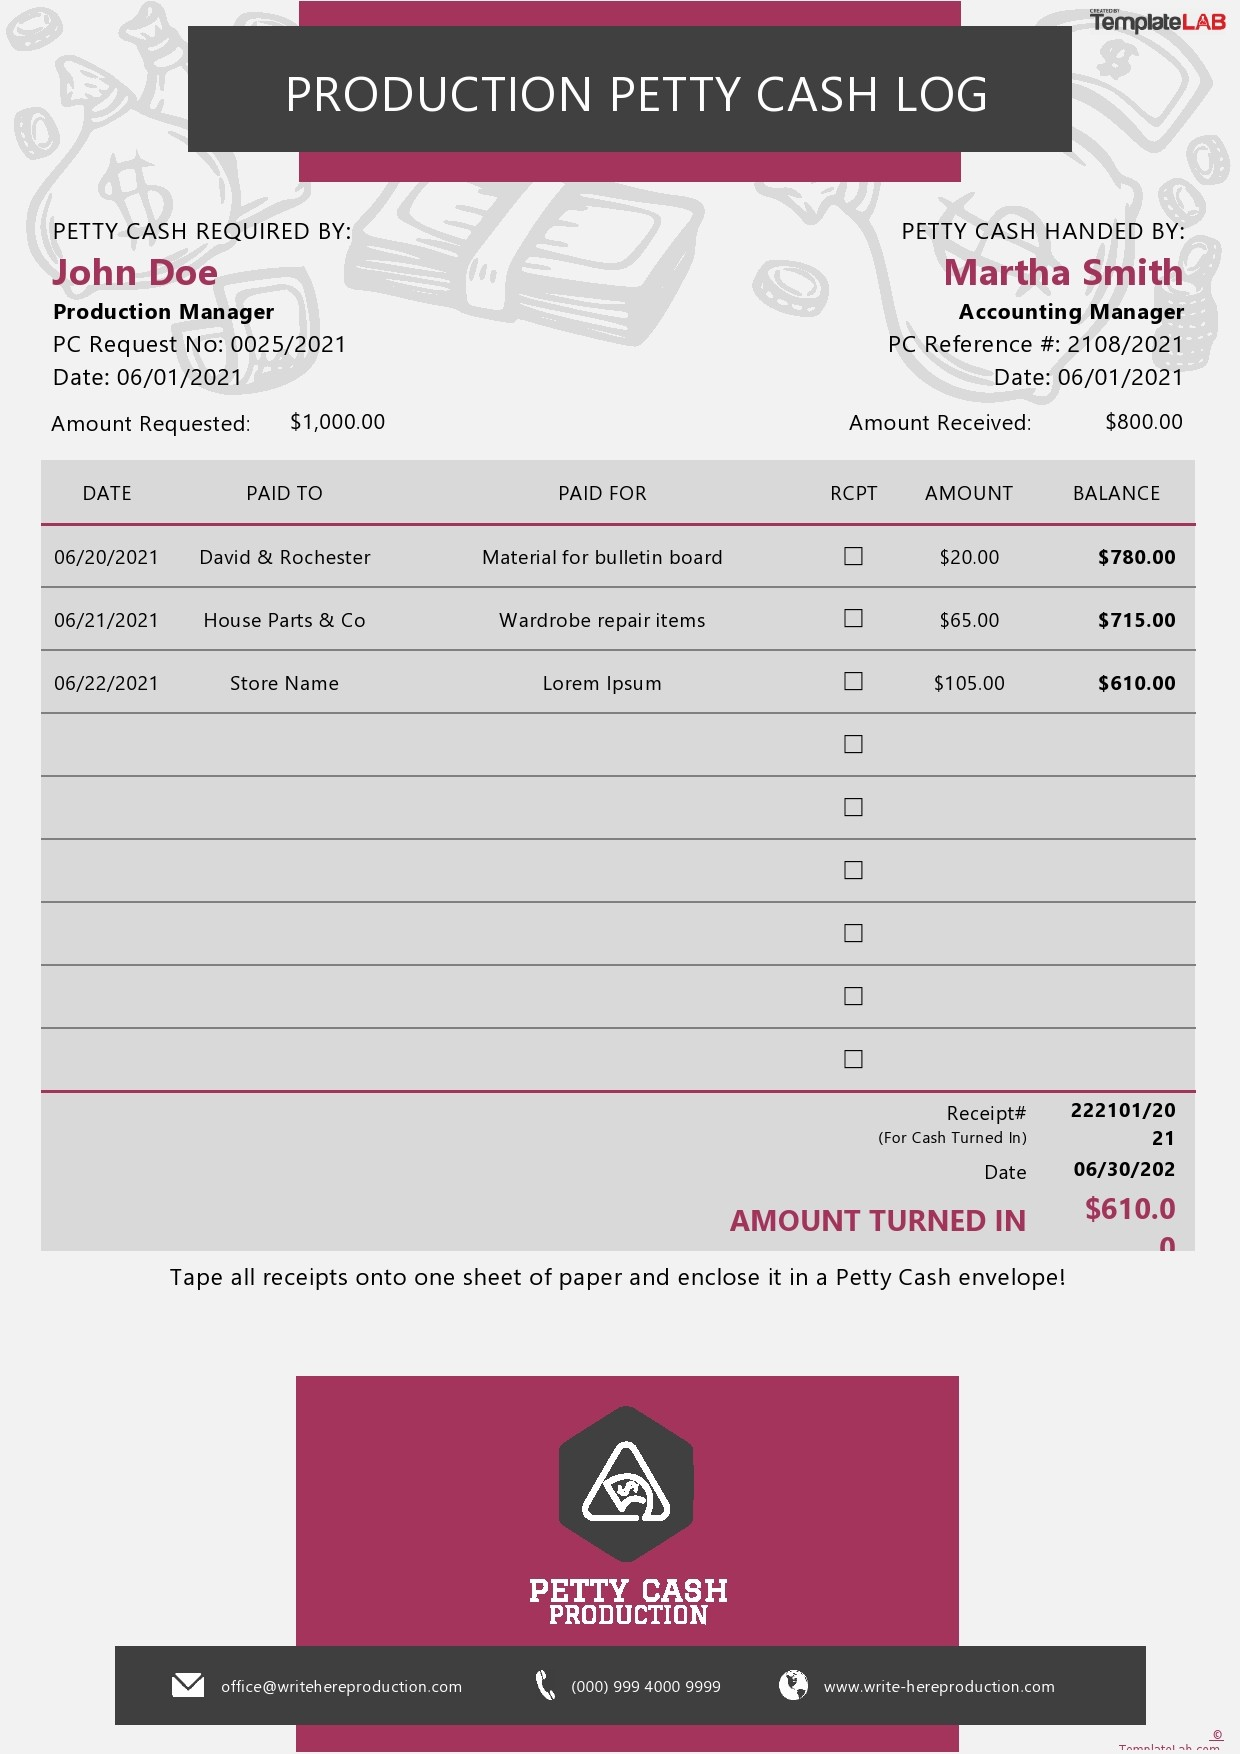 Free Production Petty Cash Log Template - TemplateLab.com